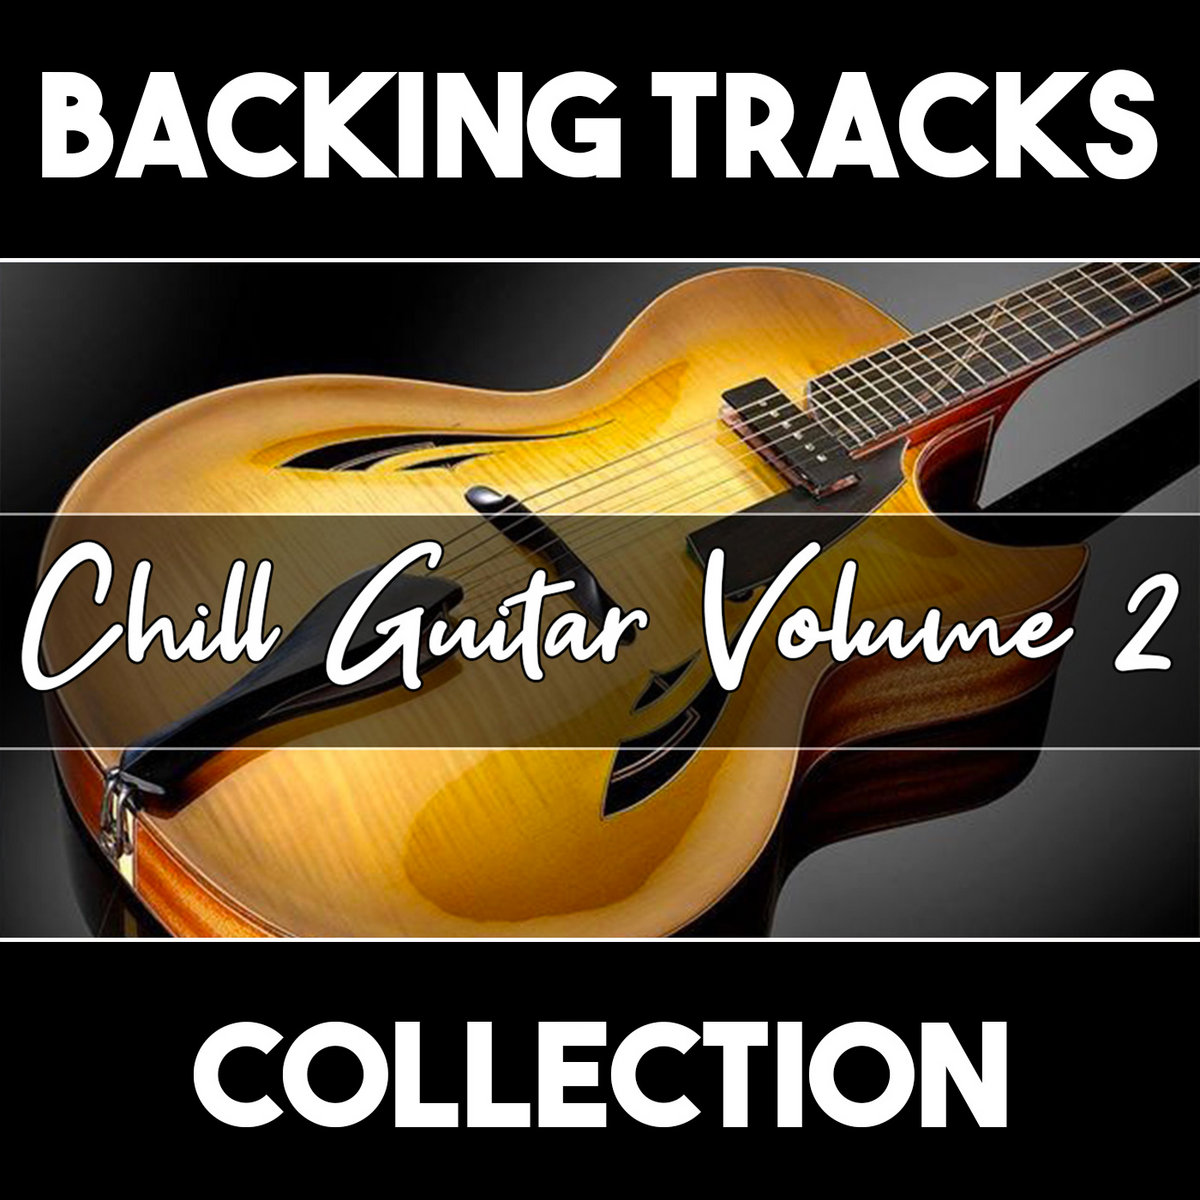 CHILL OUT, SMOOTH JAZZ GUITAR Volume 2 BACKING TRACKS